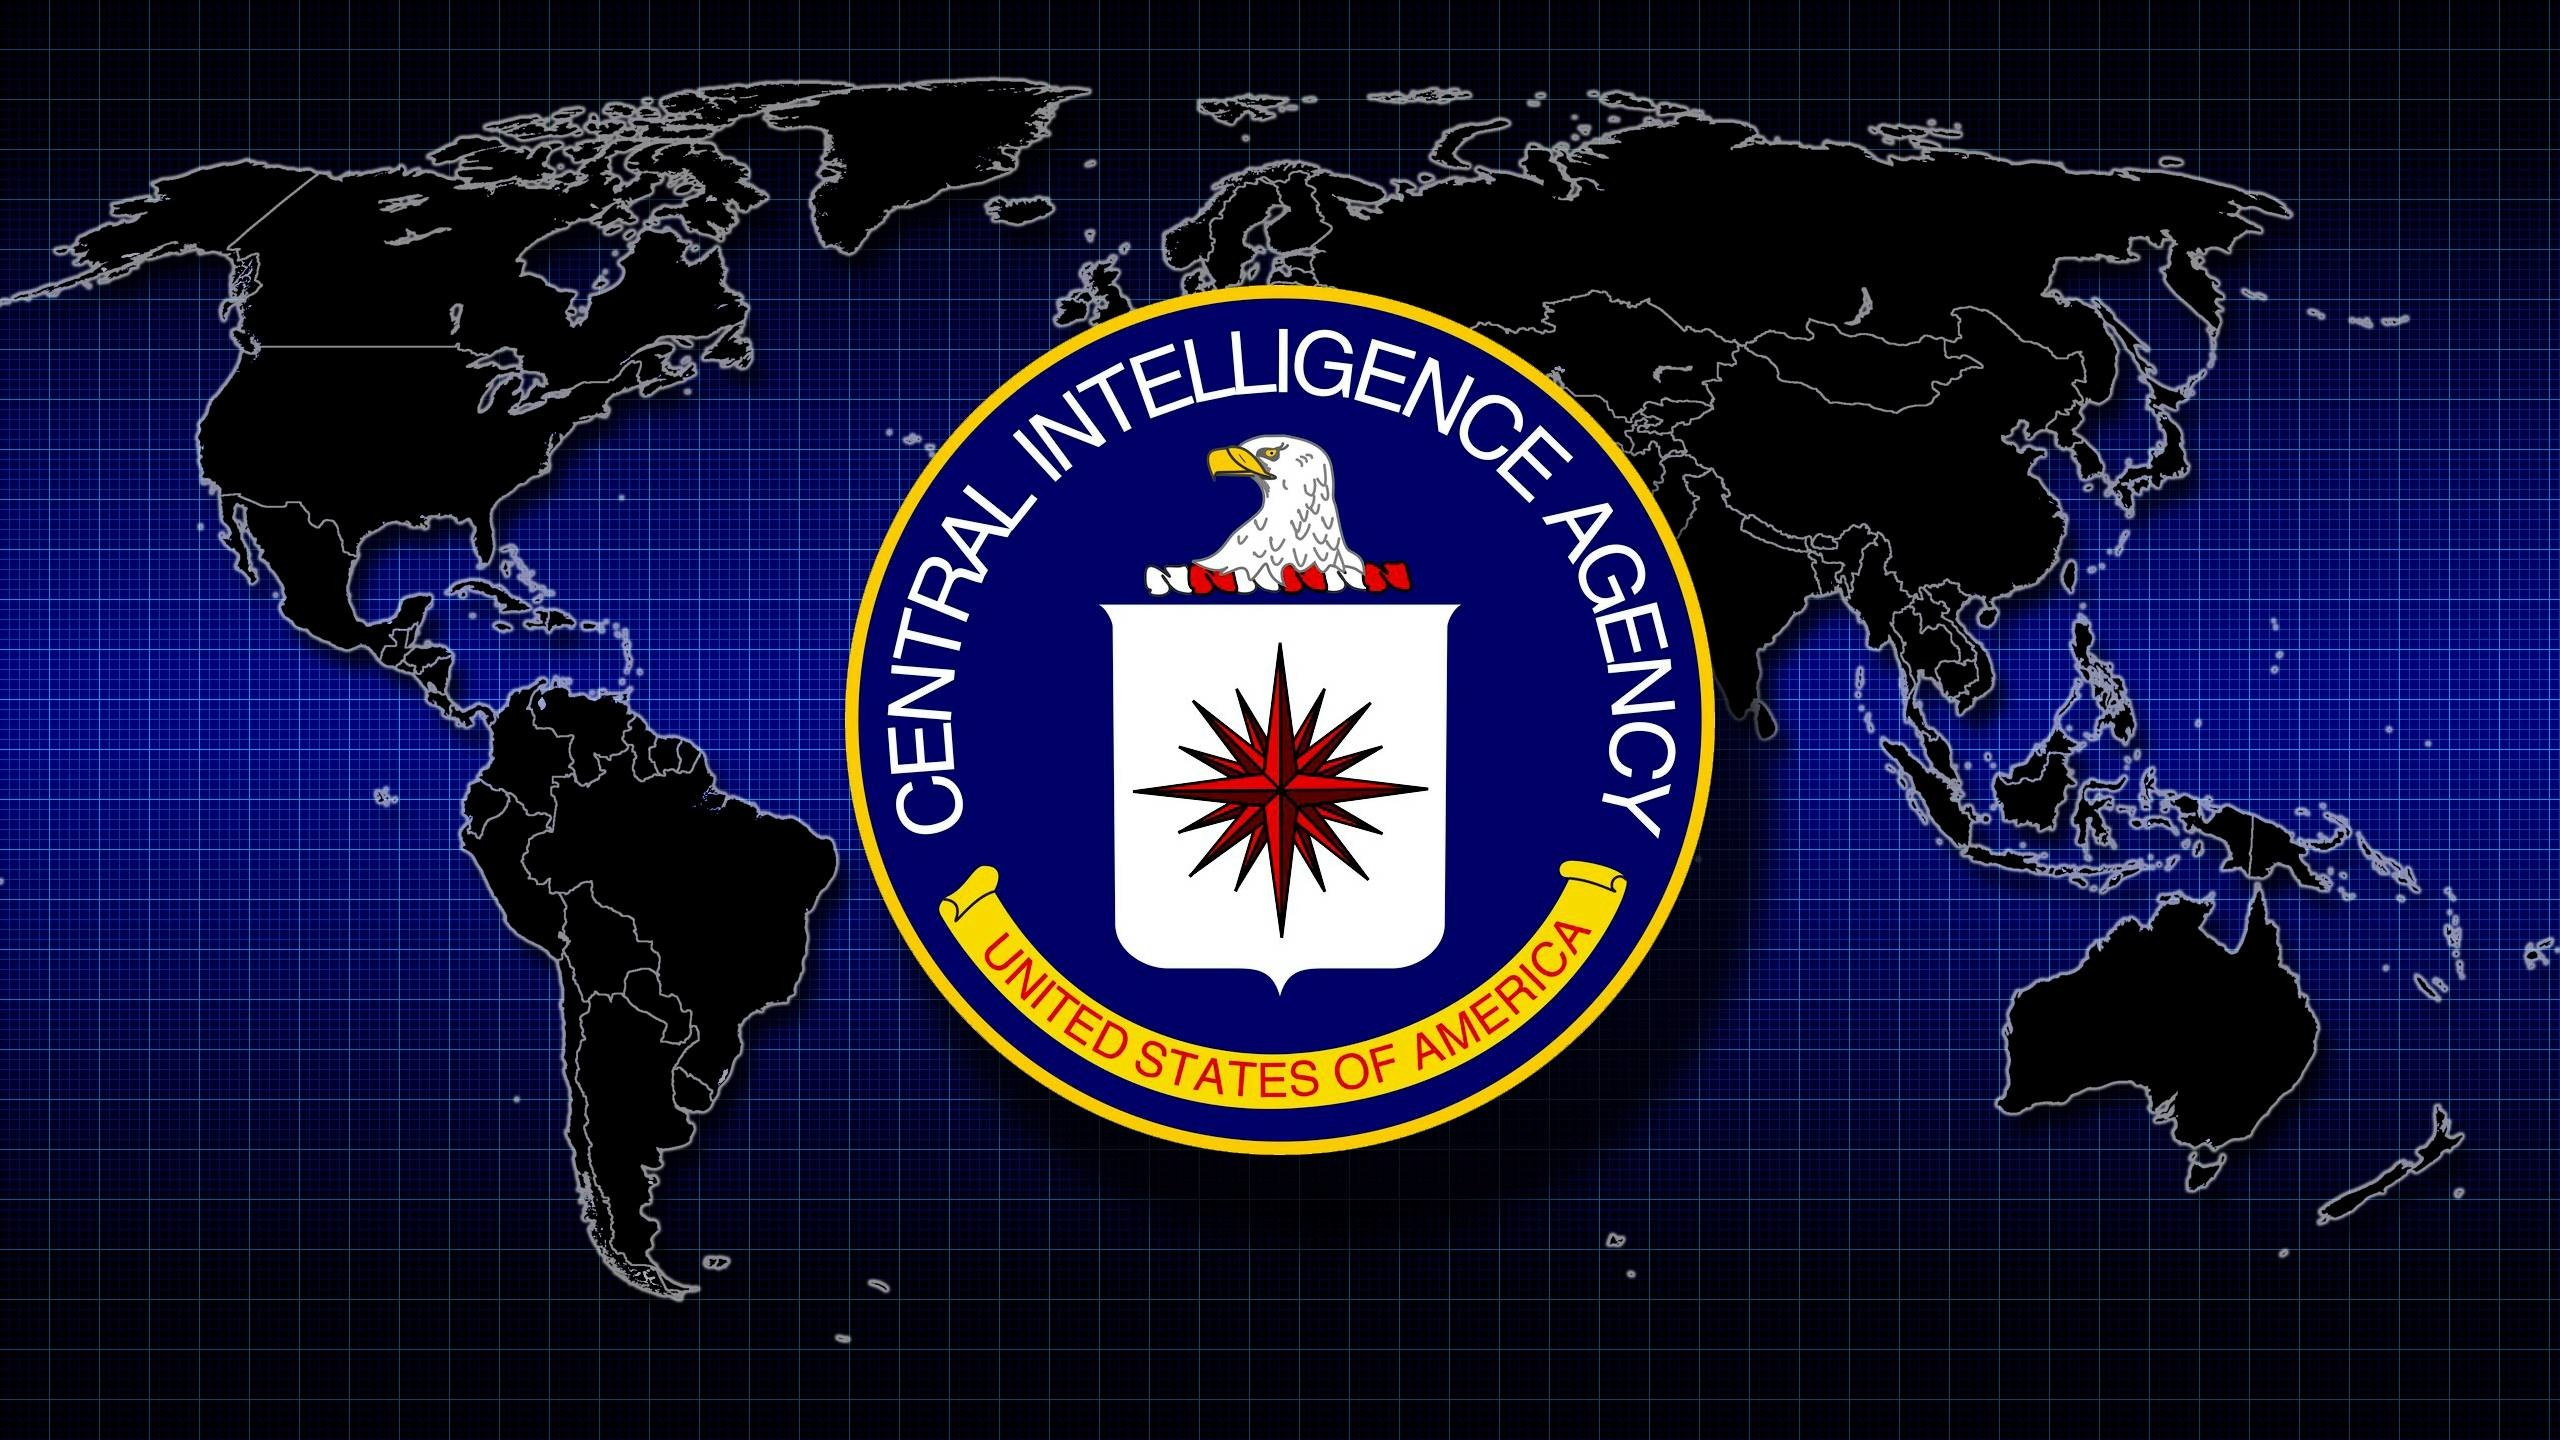 Res: 2560x1440, Wallpapers For > Secret Intelligence Service Wallpaper